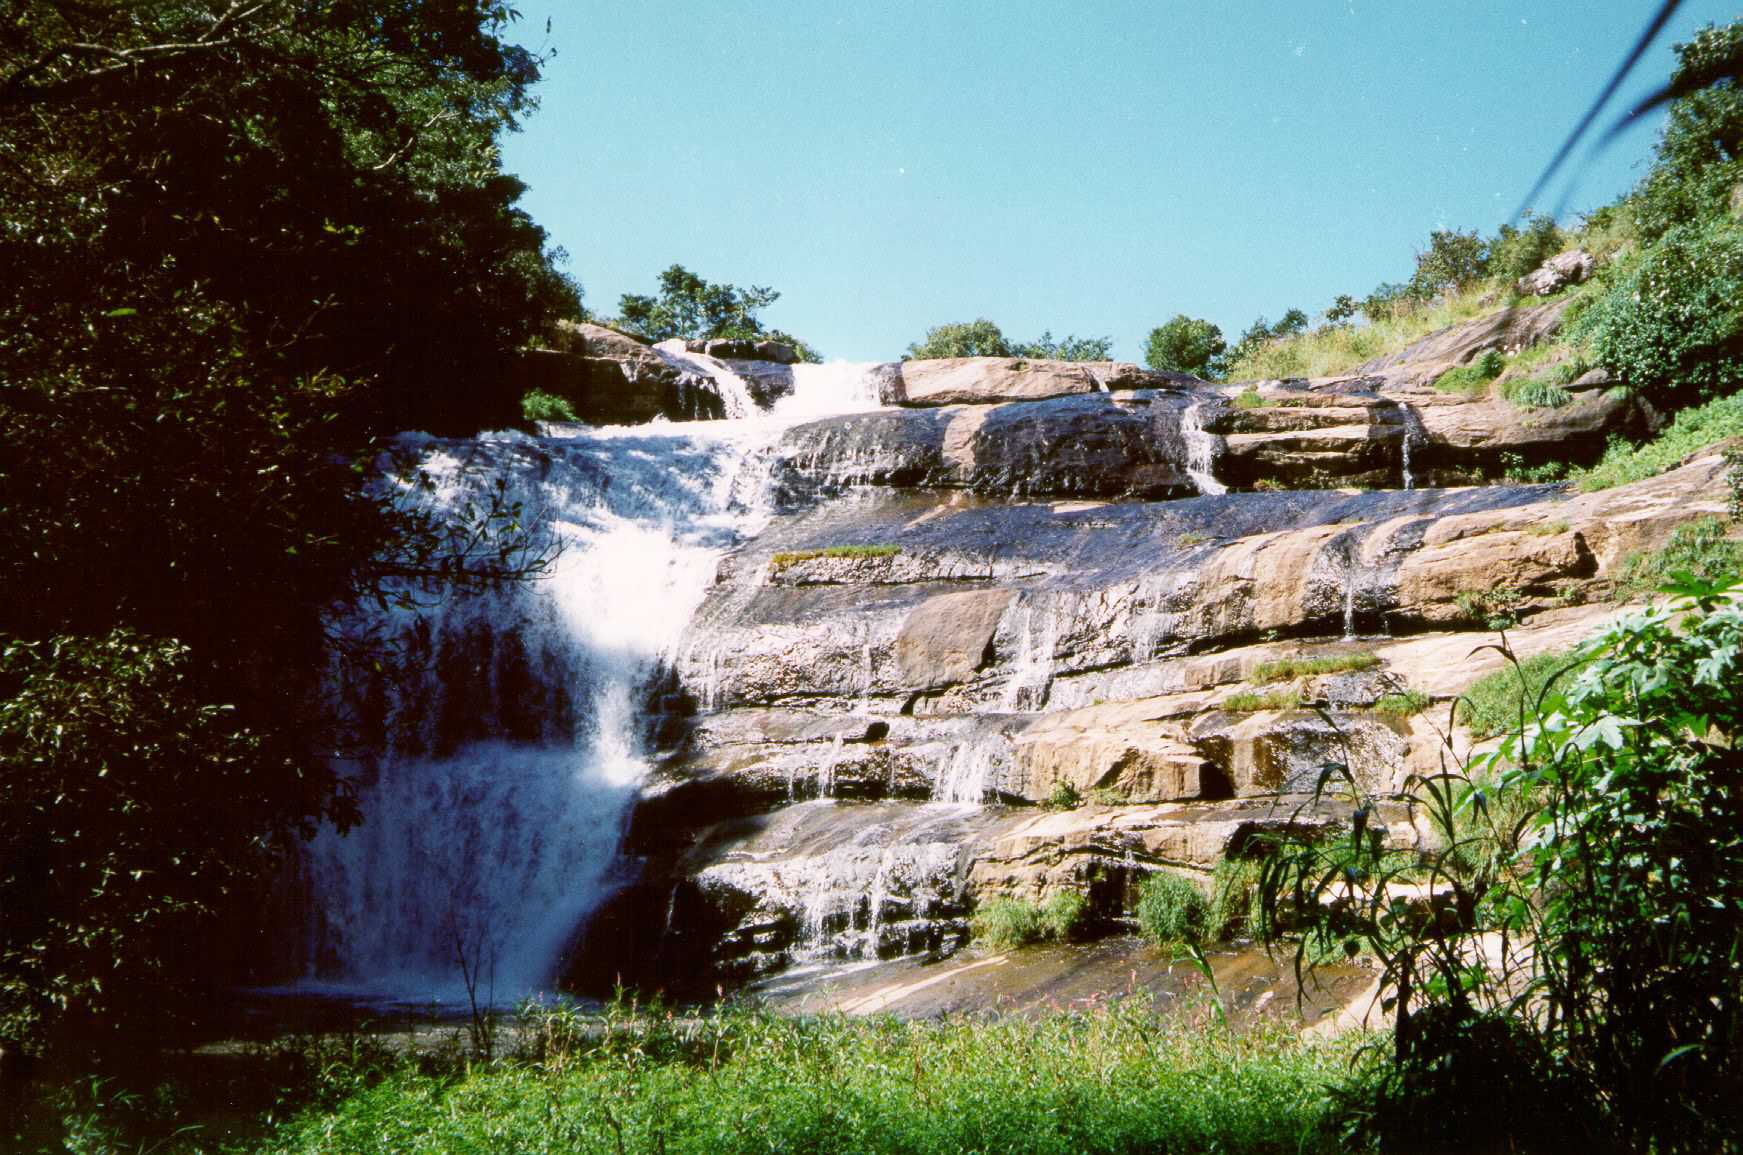 The Falls at Skambha